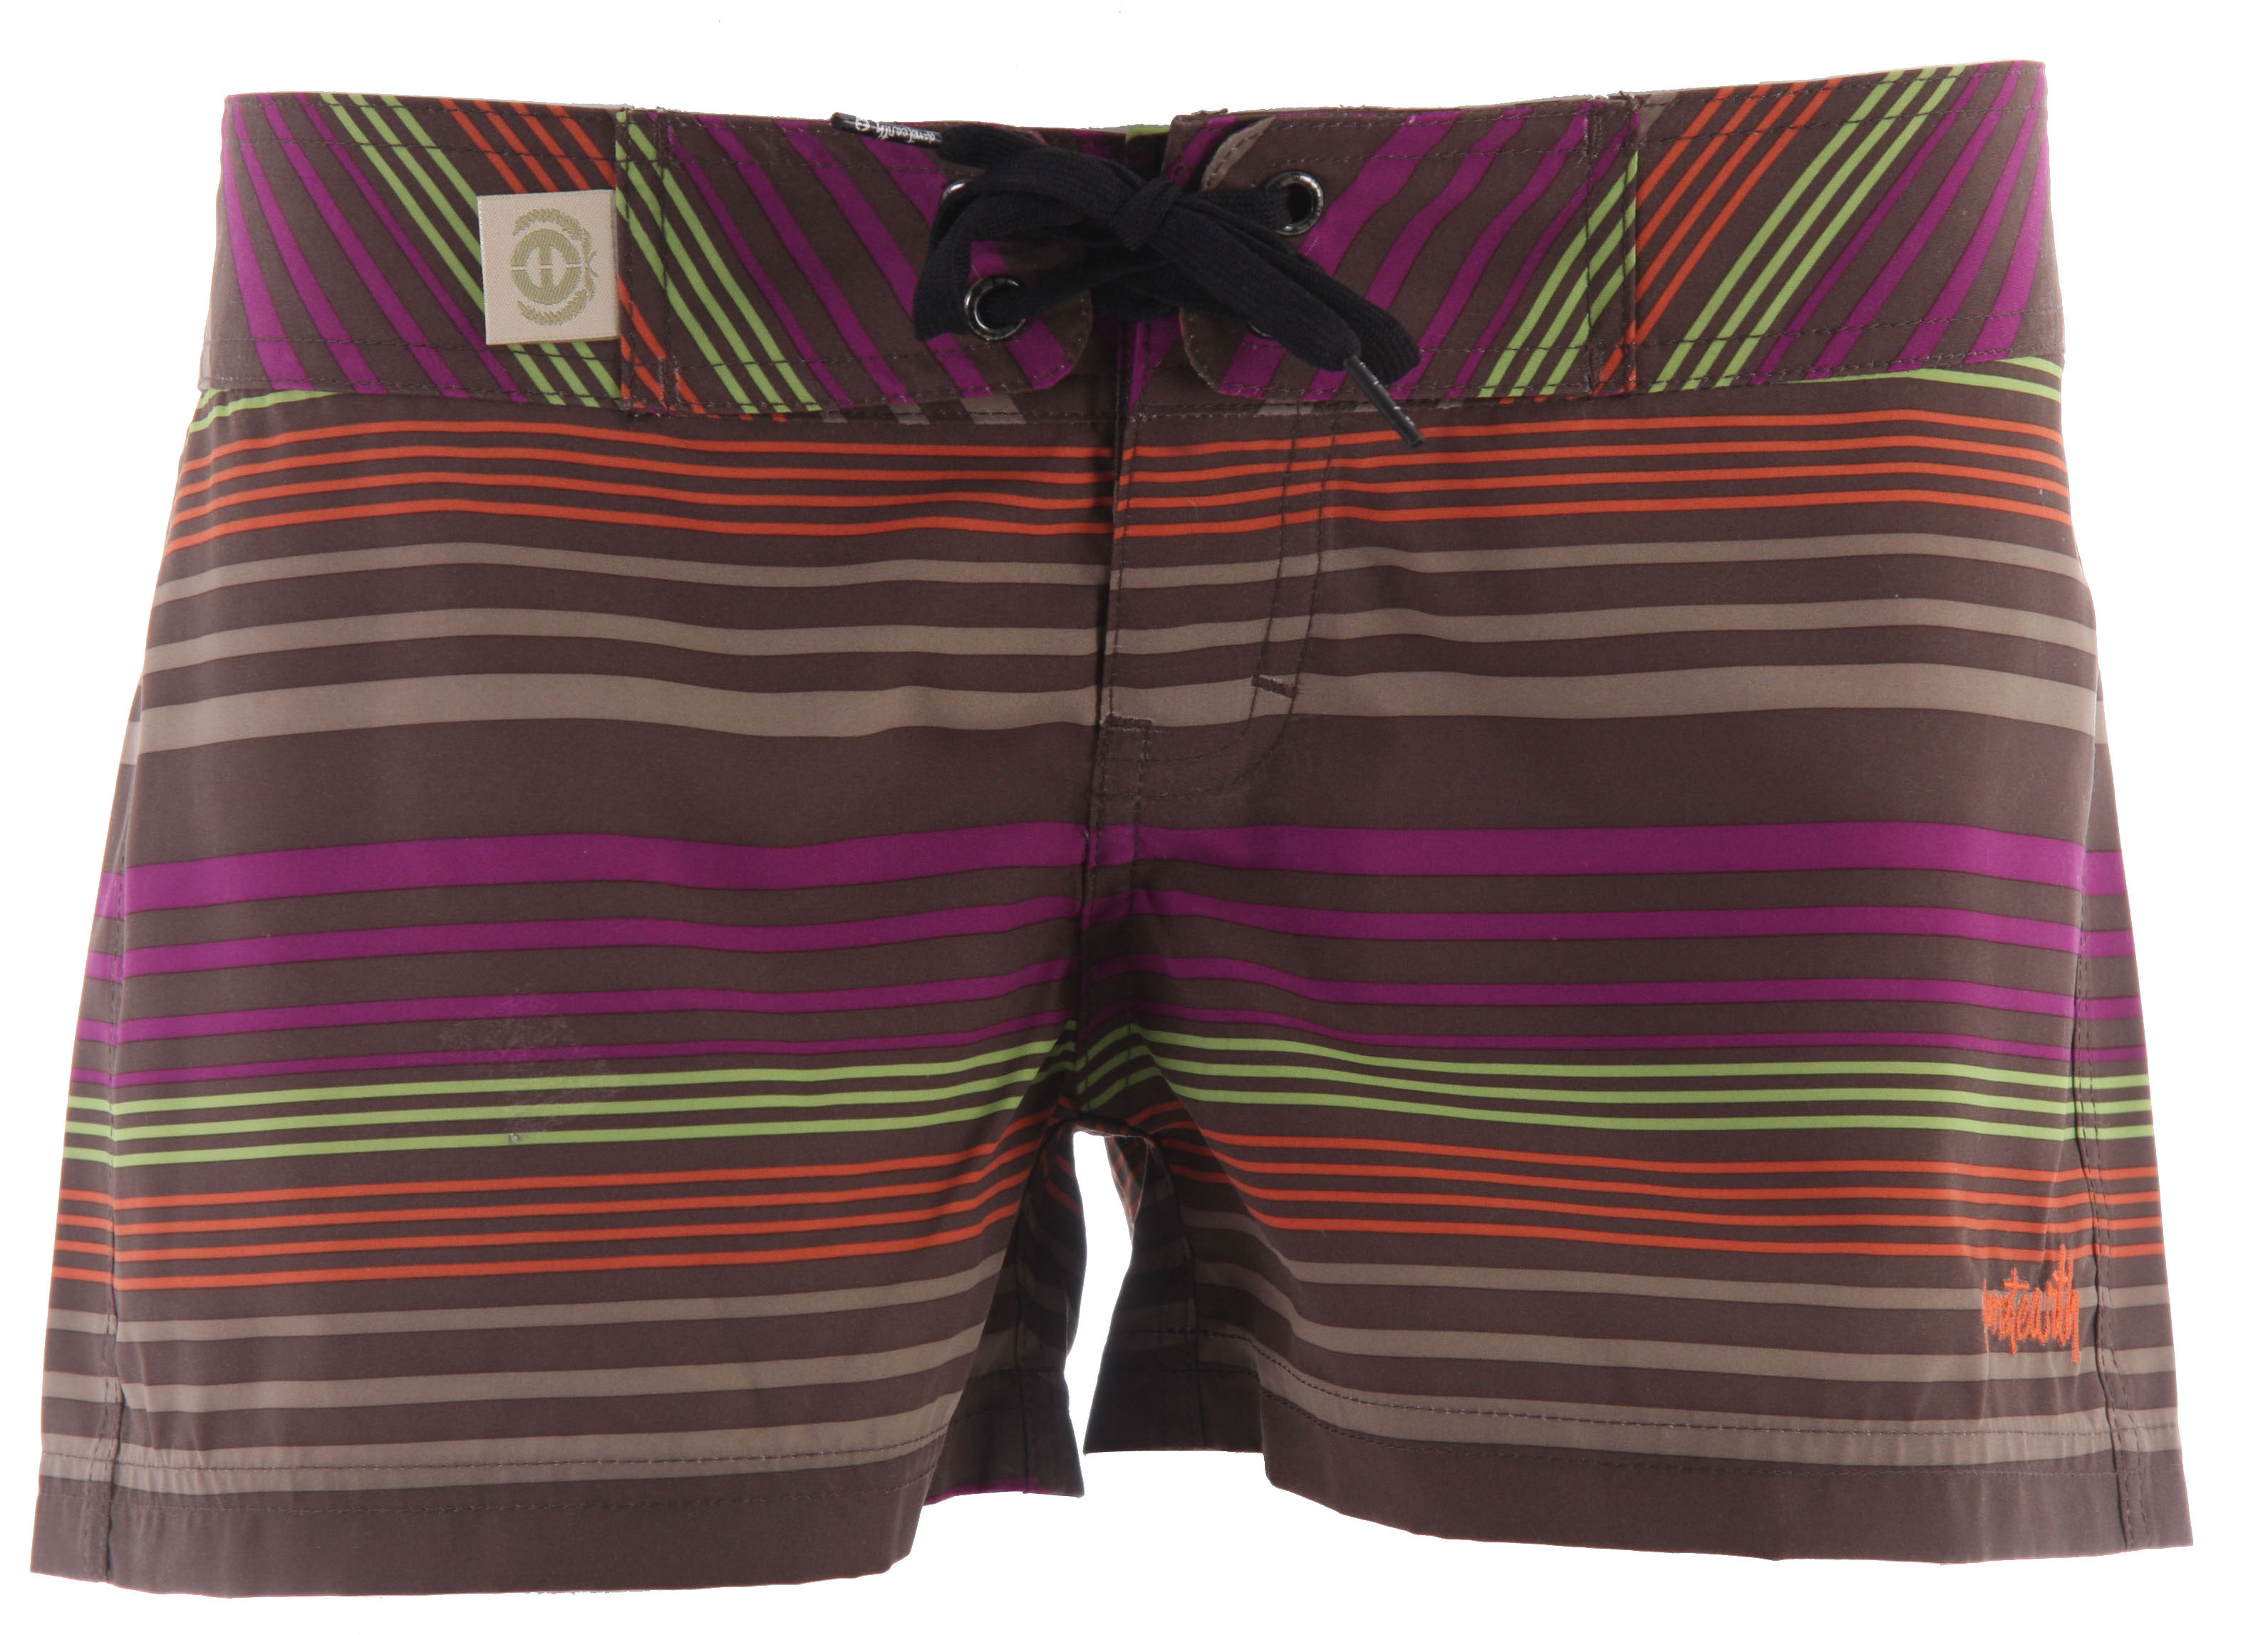 Surf Key Features of Planet Earth Kimmel Boardshorts:100% Recycled Polyester PET, 2.5'' Inseam - $24.95